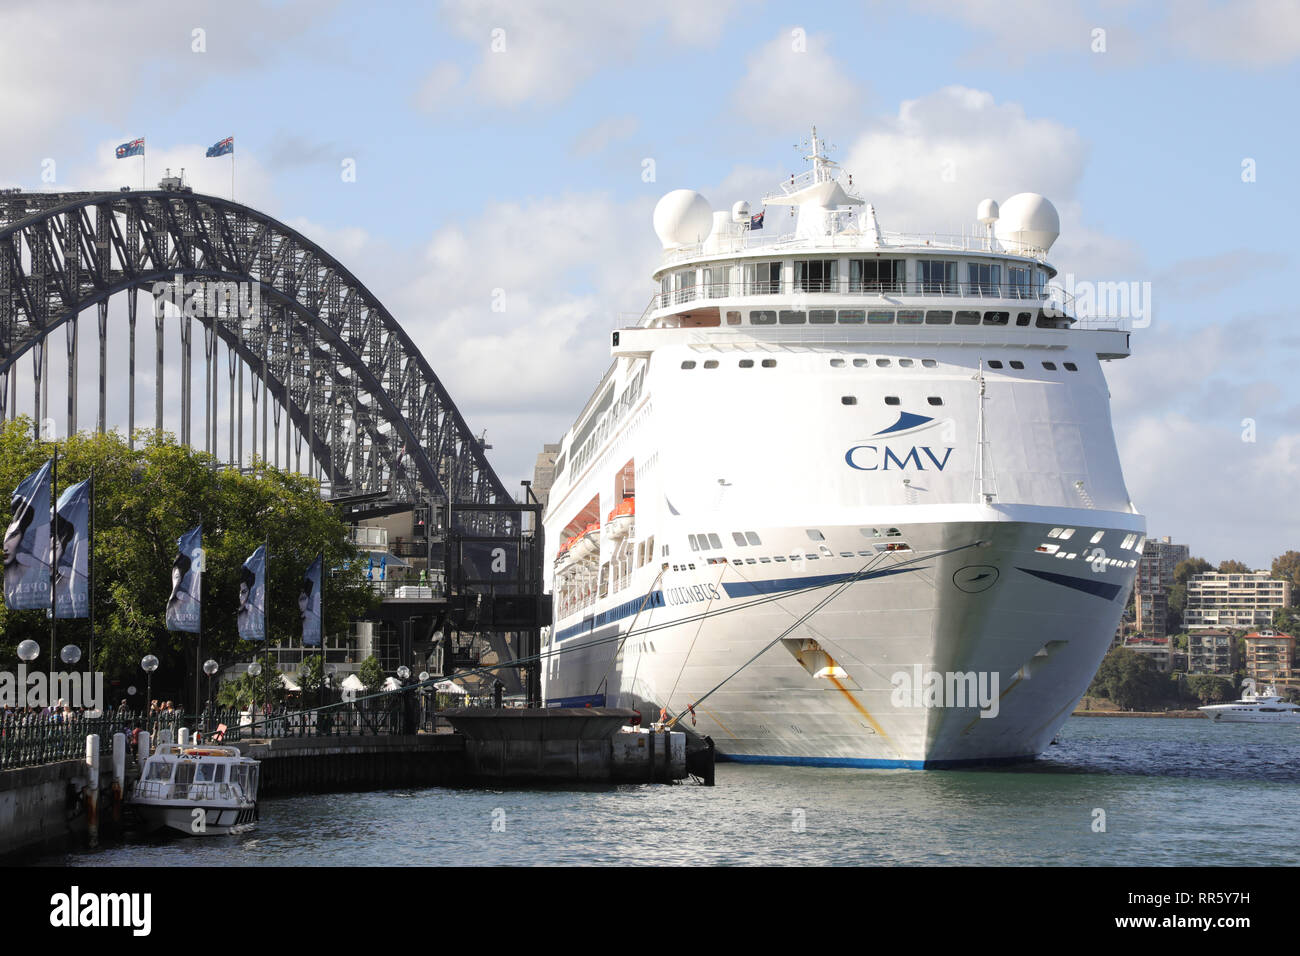 Cruise & Maritime Voyages' MV Columbus cruise ship moored at the Overseas Passenger Terminal in Sydney, Australia. Stock Photo